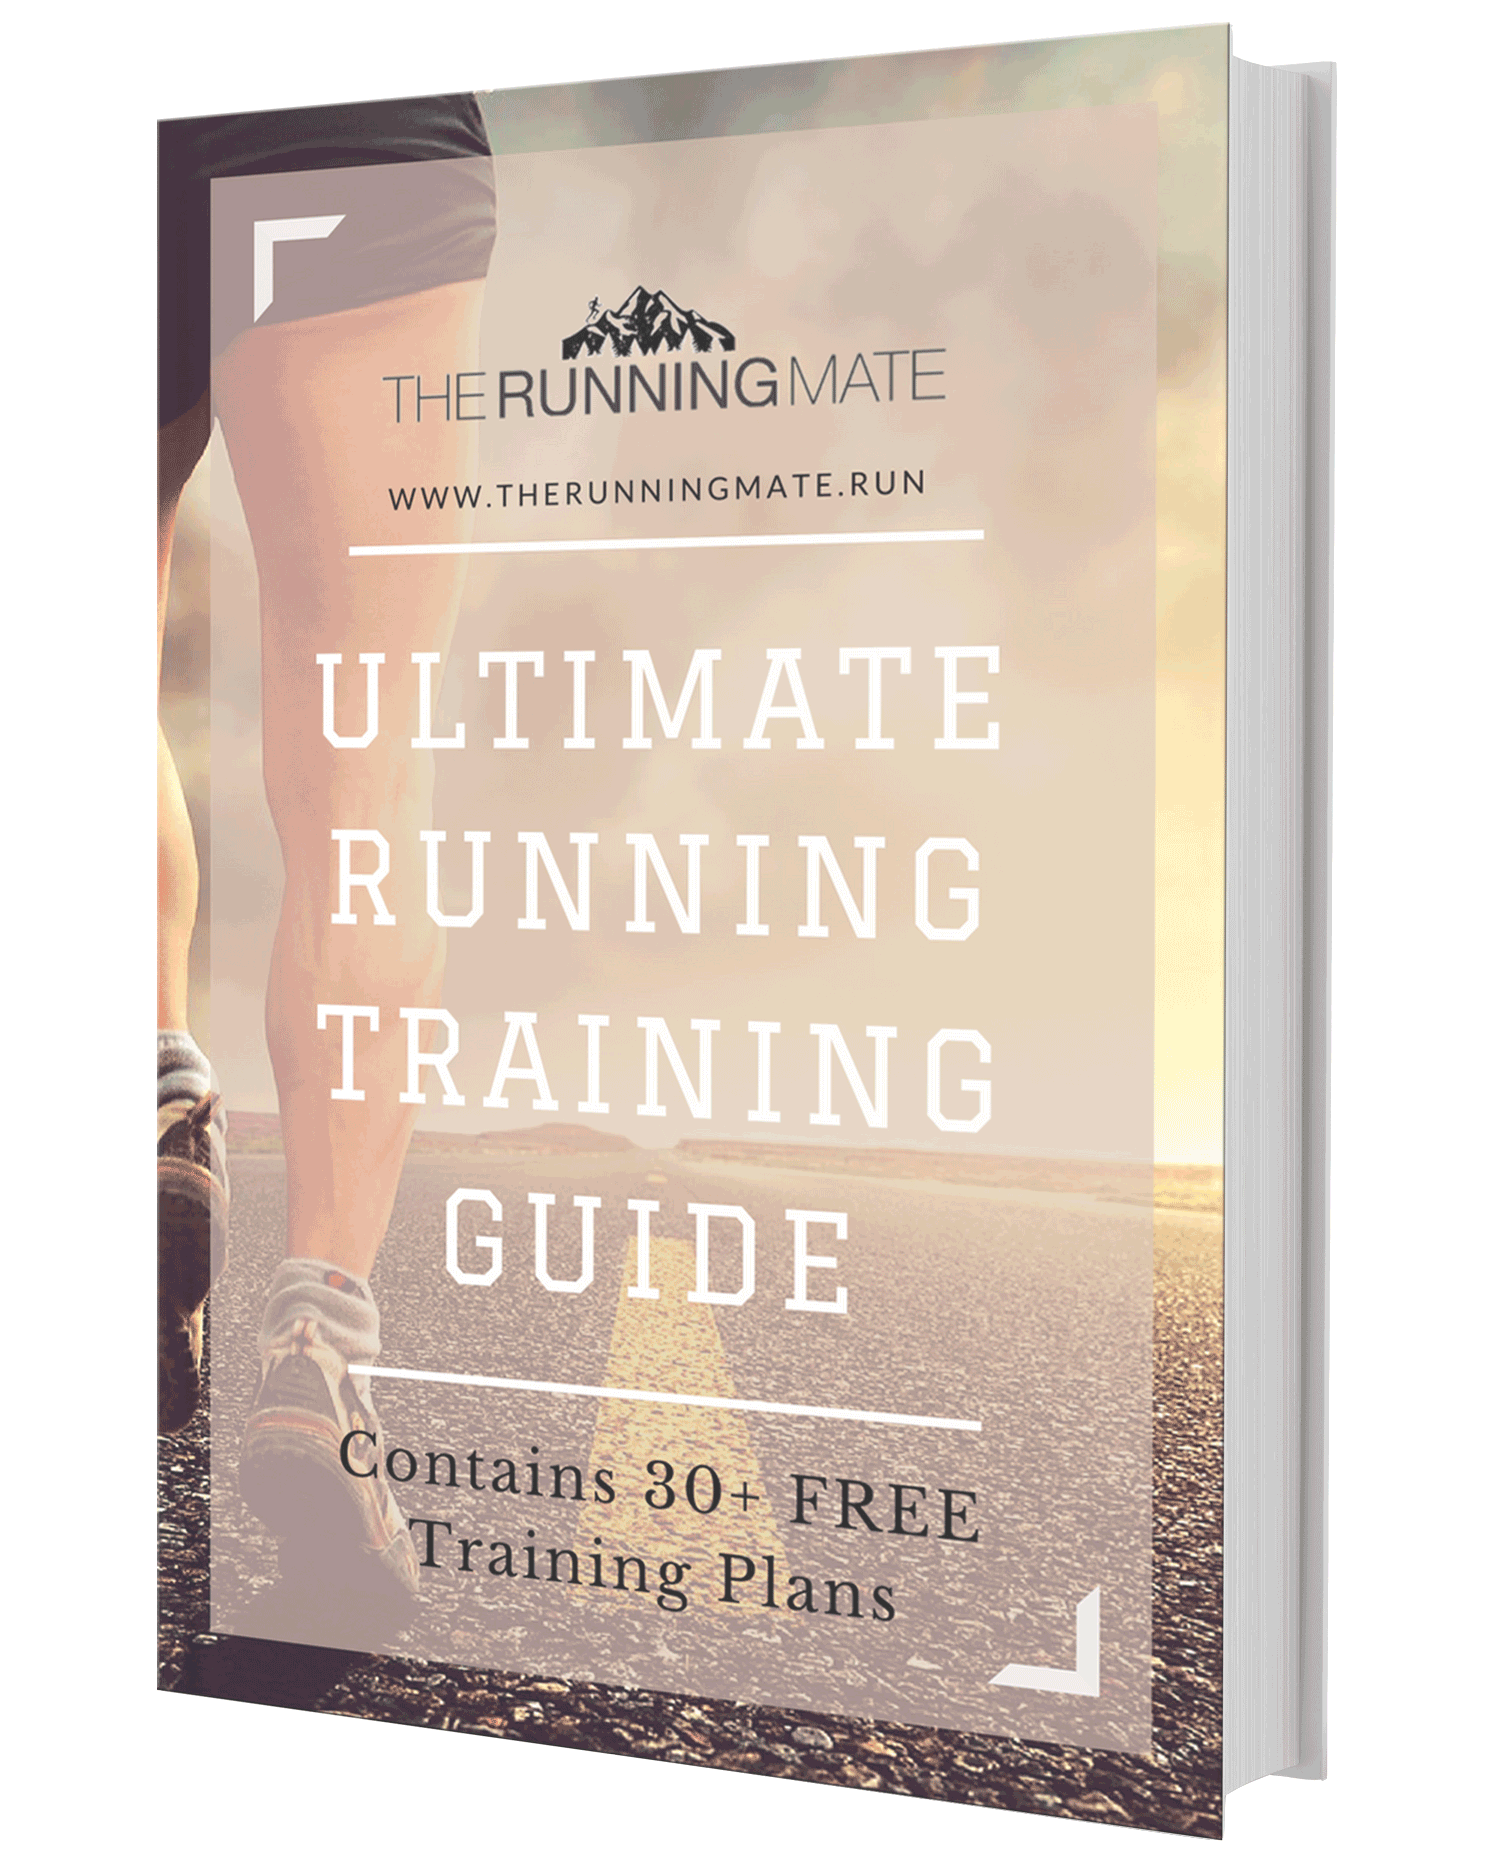 FREE training plans and running training guide